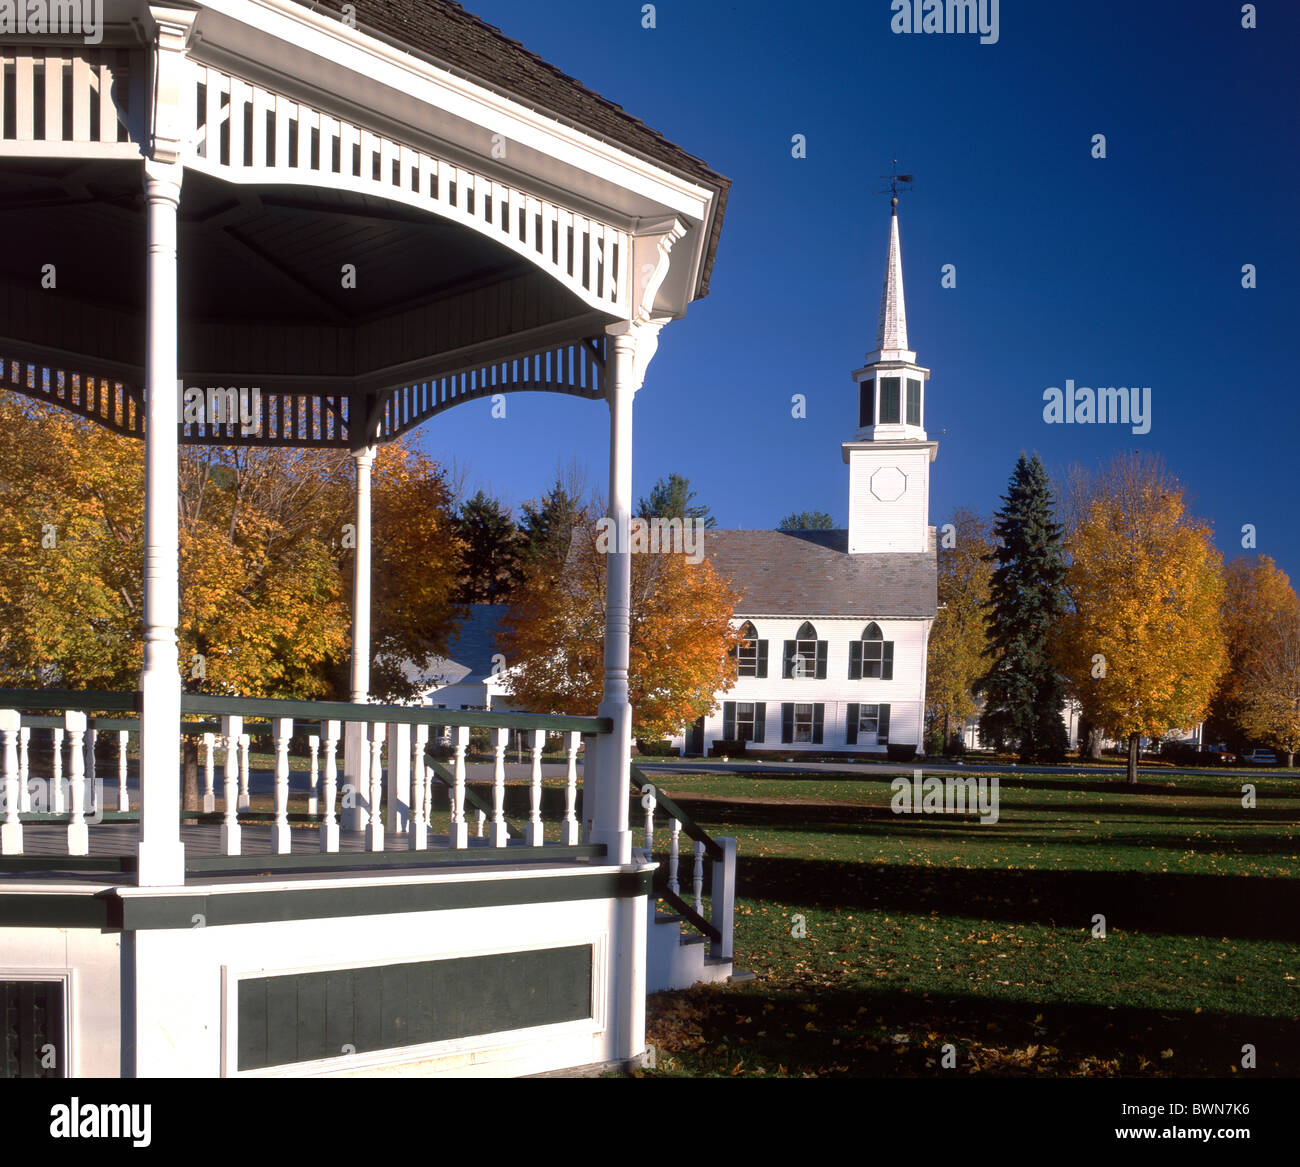 Usa america united states north america indian summer for The smallest town in the united states